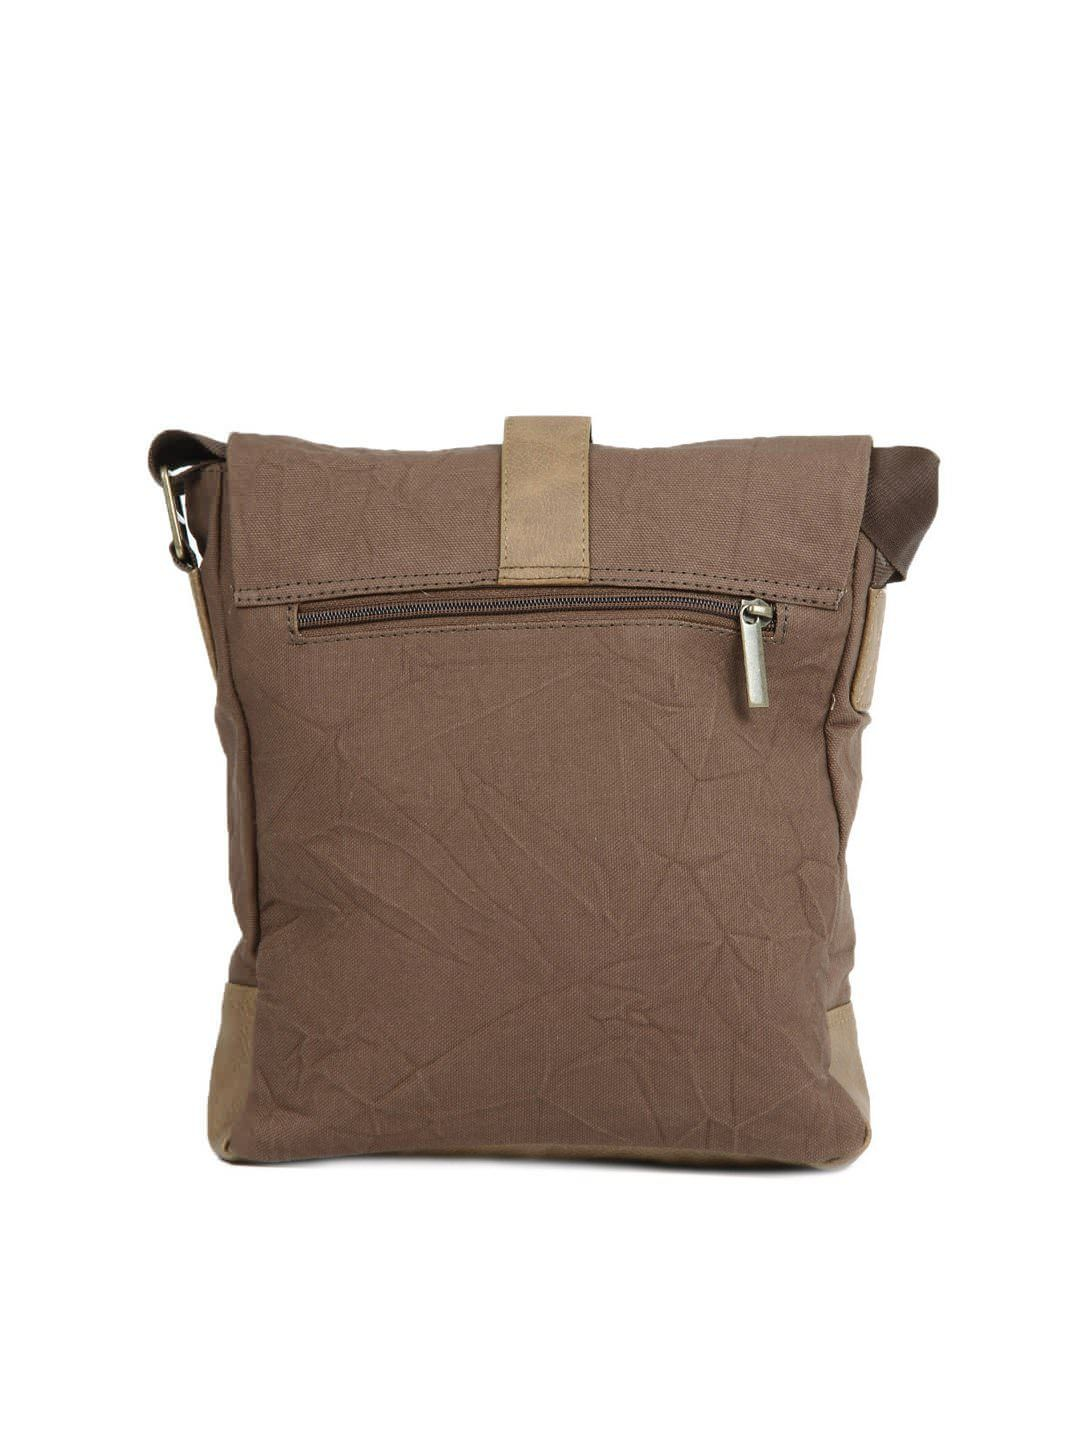 U.S. Polo Assn. Men Beige and Brown Sling Bag | Myntra ...